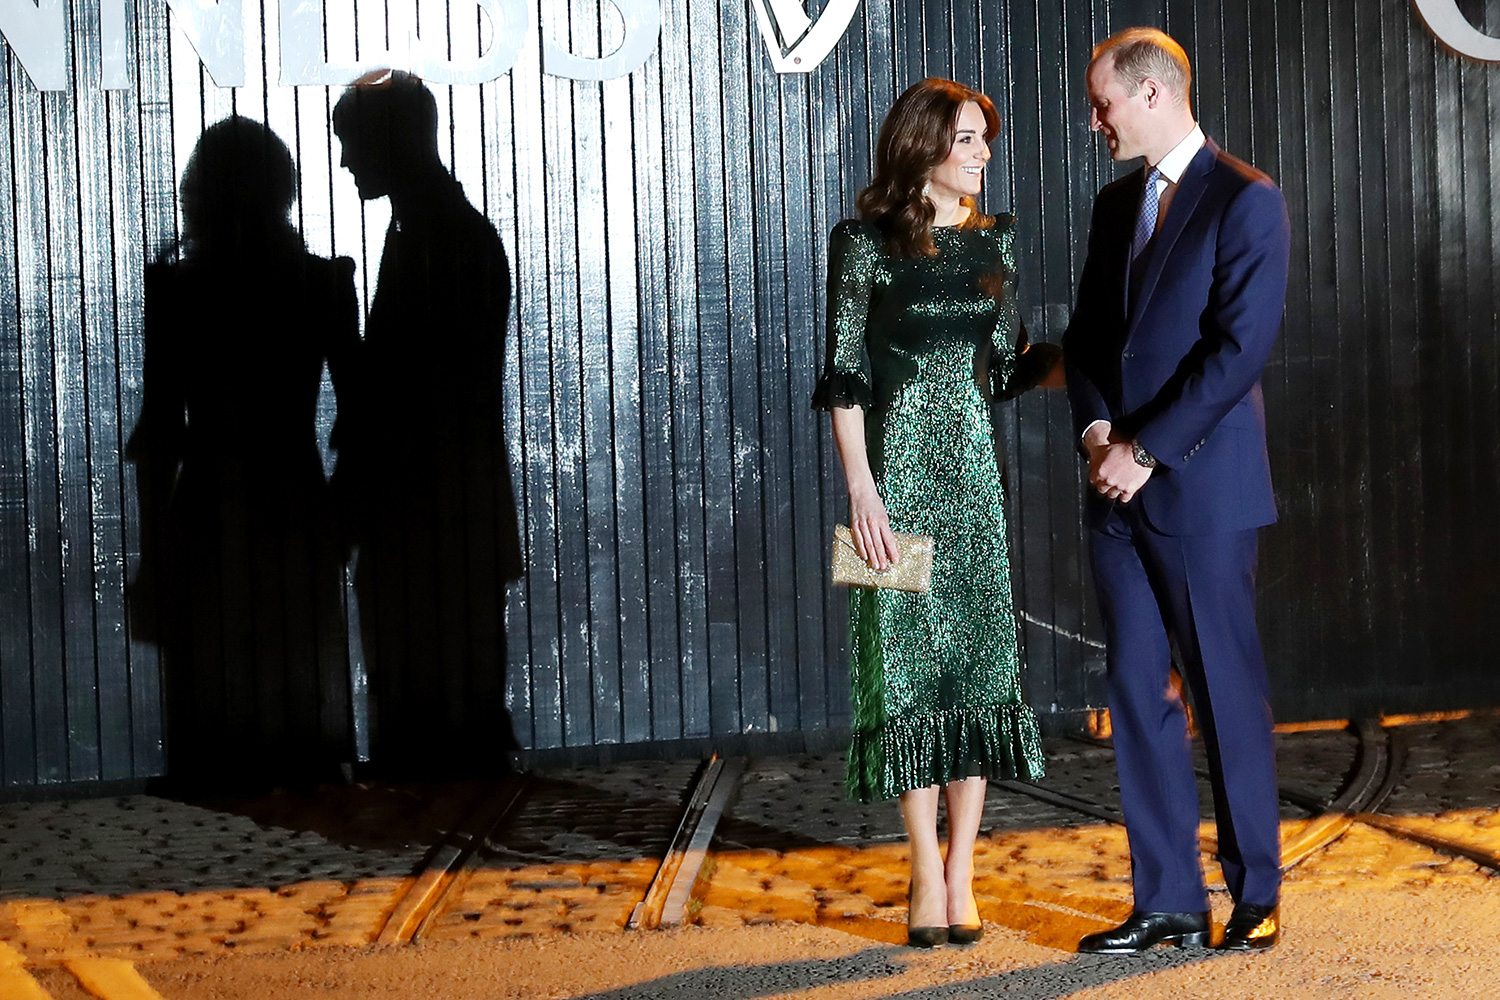 Catherine, Duchess of Cambridge and Prince William, Duke of Cambridge attend a reception hosted by the British Ambassador to Ireland Robin Barnett at the Guinness Storehouse's Gravity Bar during day one of their visit to Ireland on March 03, 2020 in Dublin, Ireland